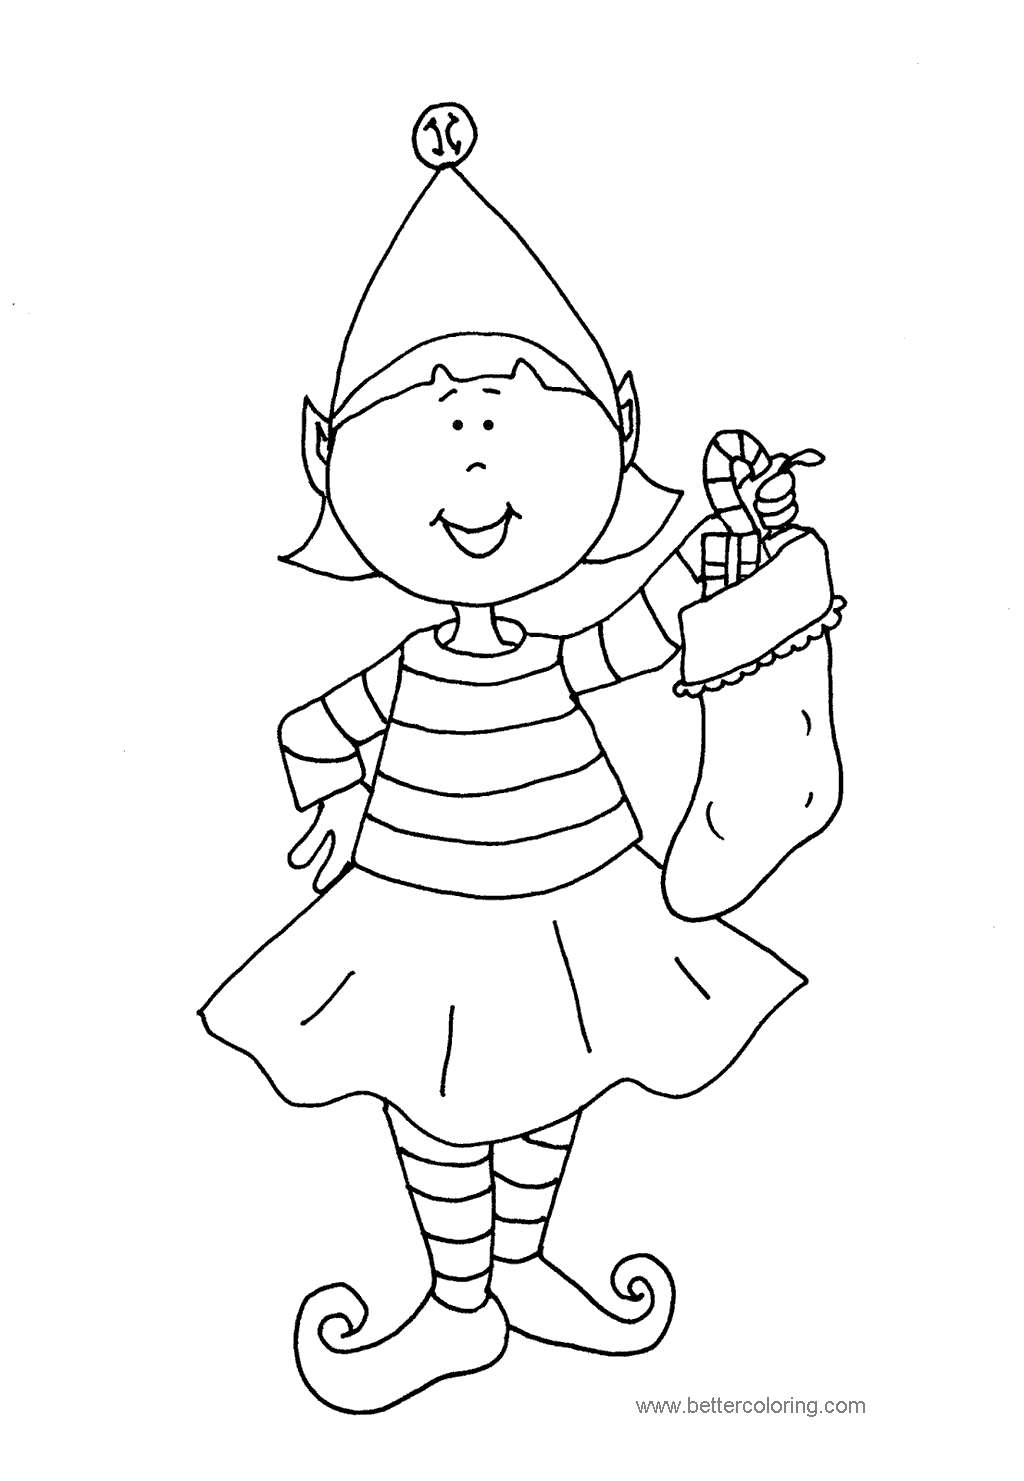 Free Evles with Stocking Coloring Pages printable